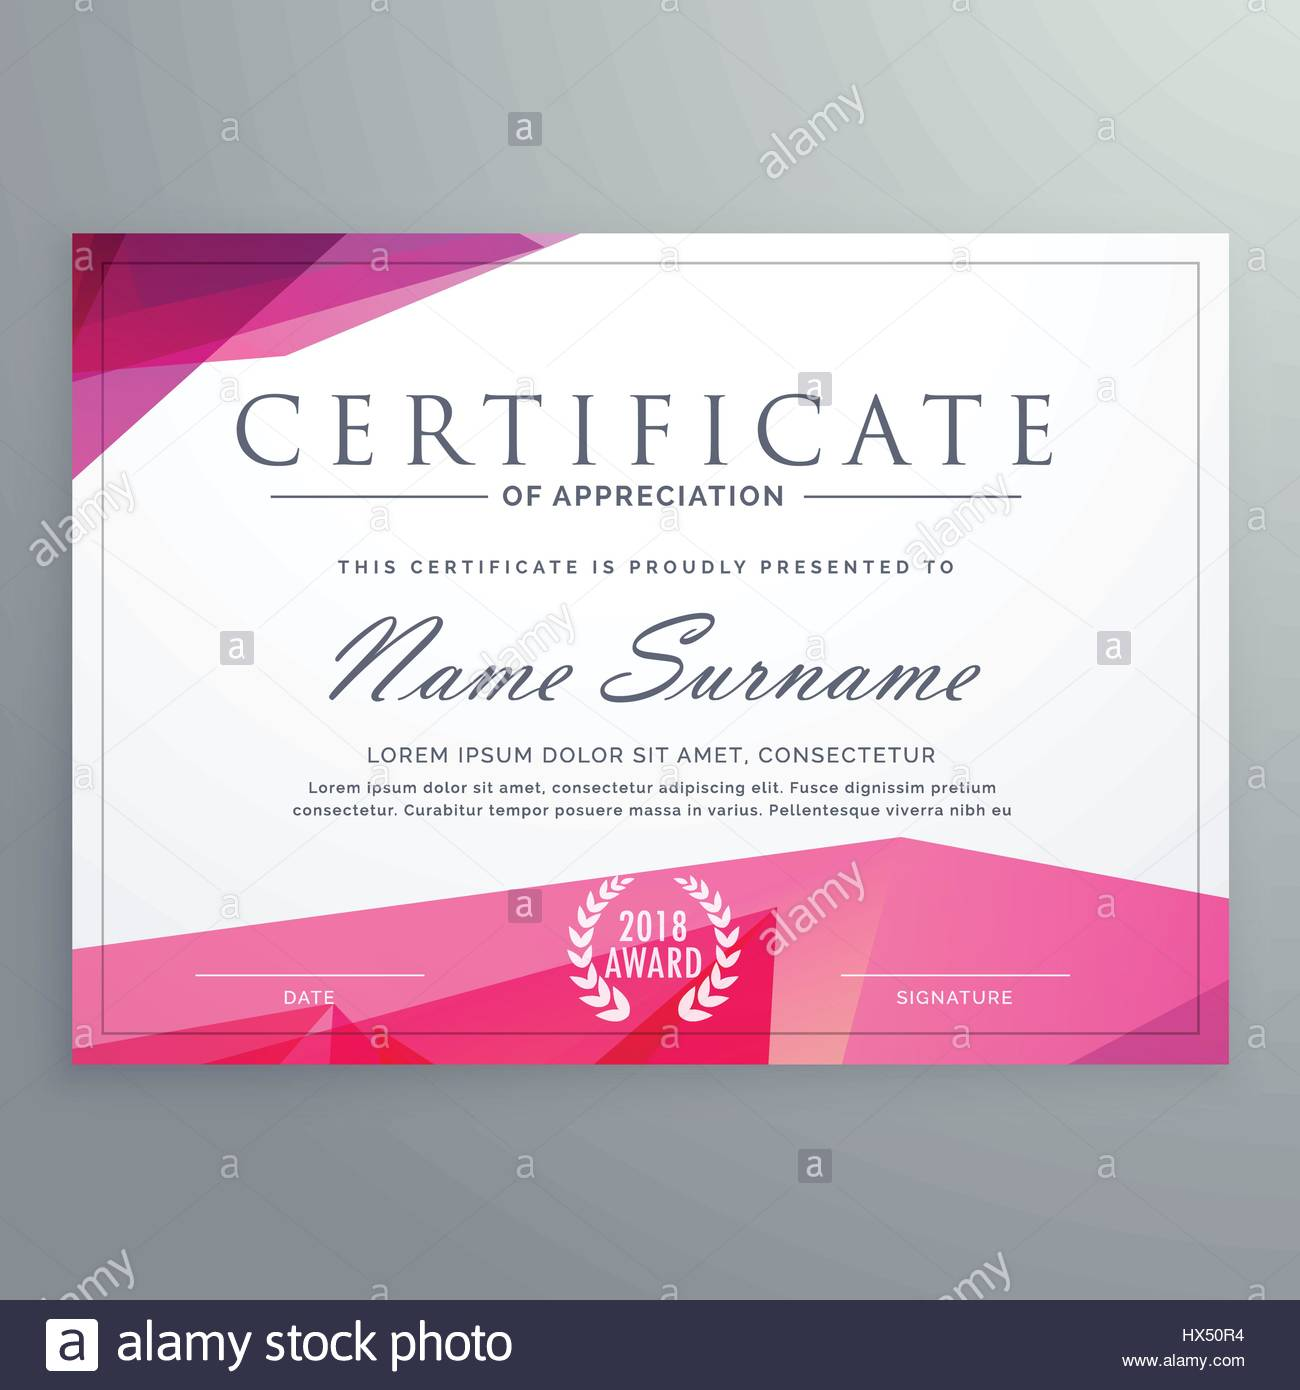 Modern certificate of appreciation creative template stock vector modern certificate of appreciation creative template yelopaper Image collections